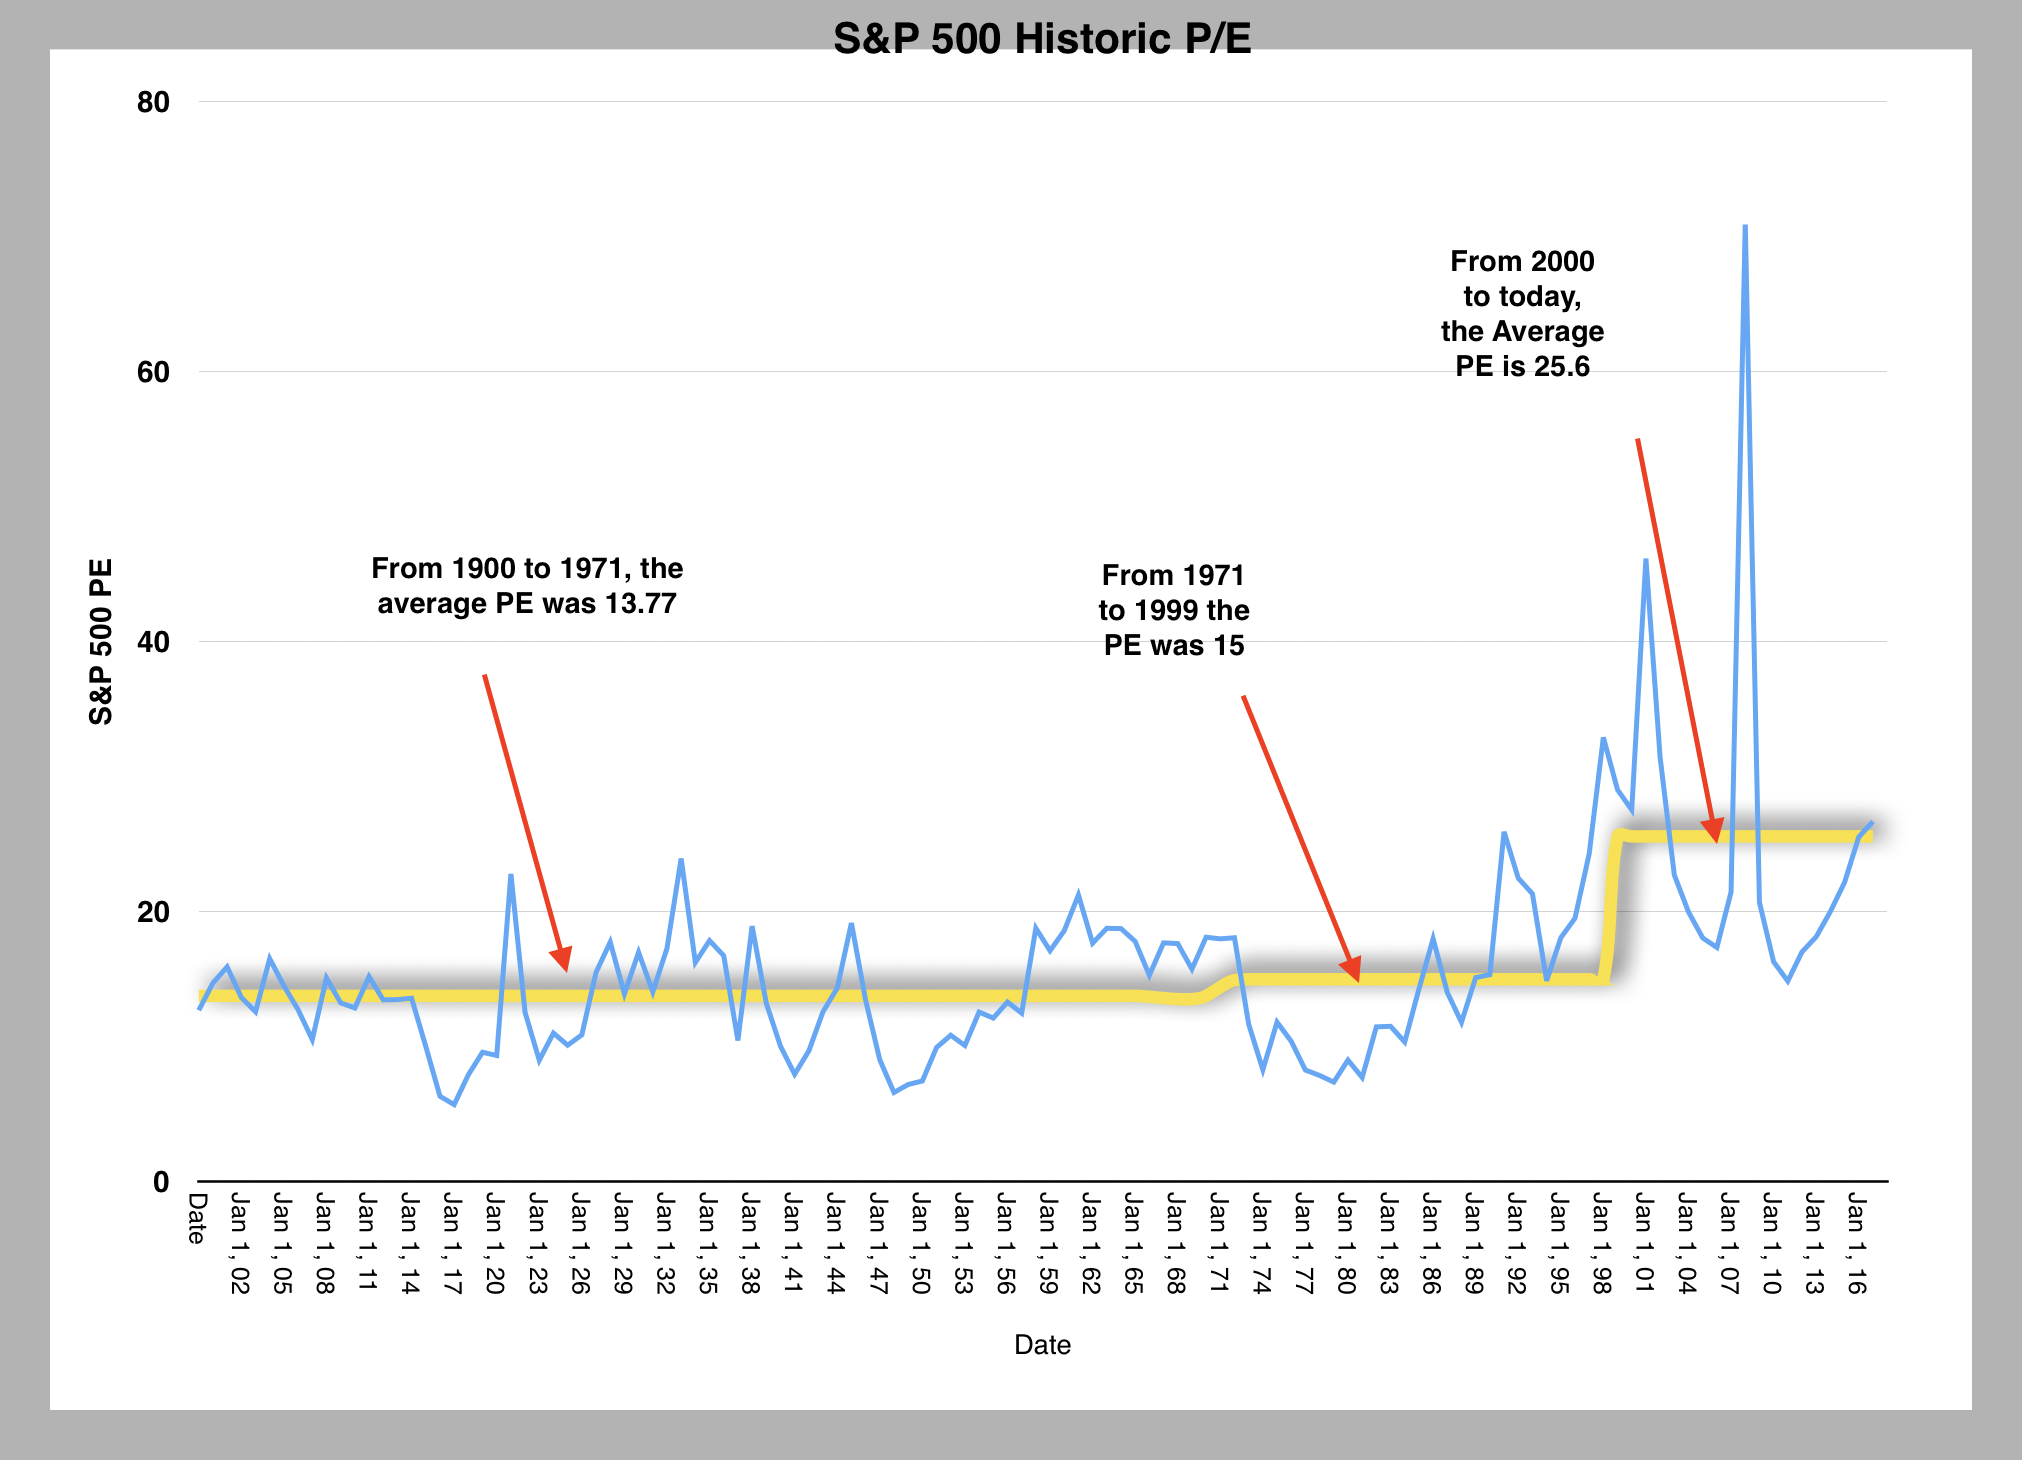 Spy Stock Quote Why A 25 Pe For The S&p 500 Might Be The New Norm  Seeking Alpha